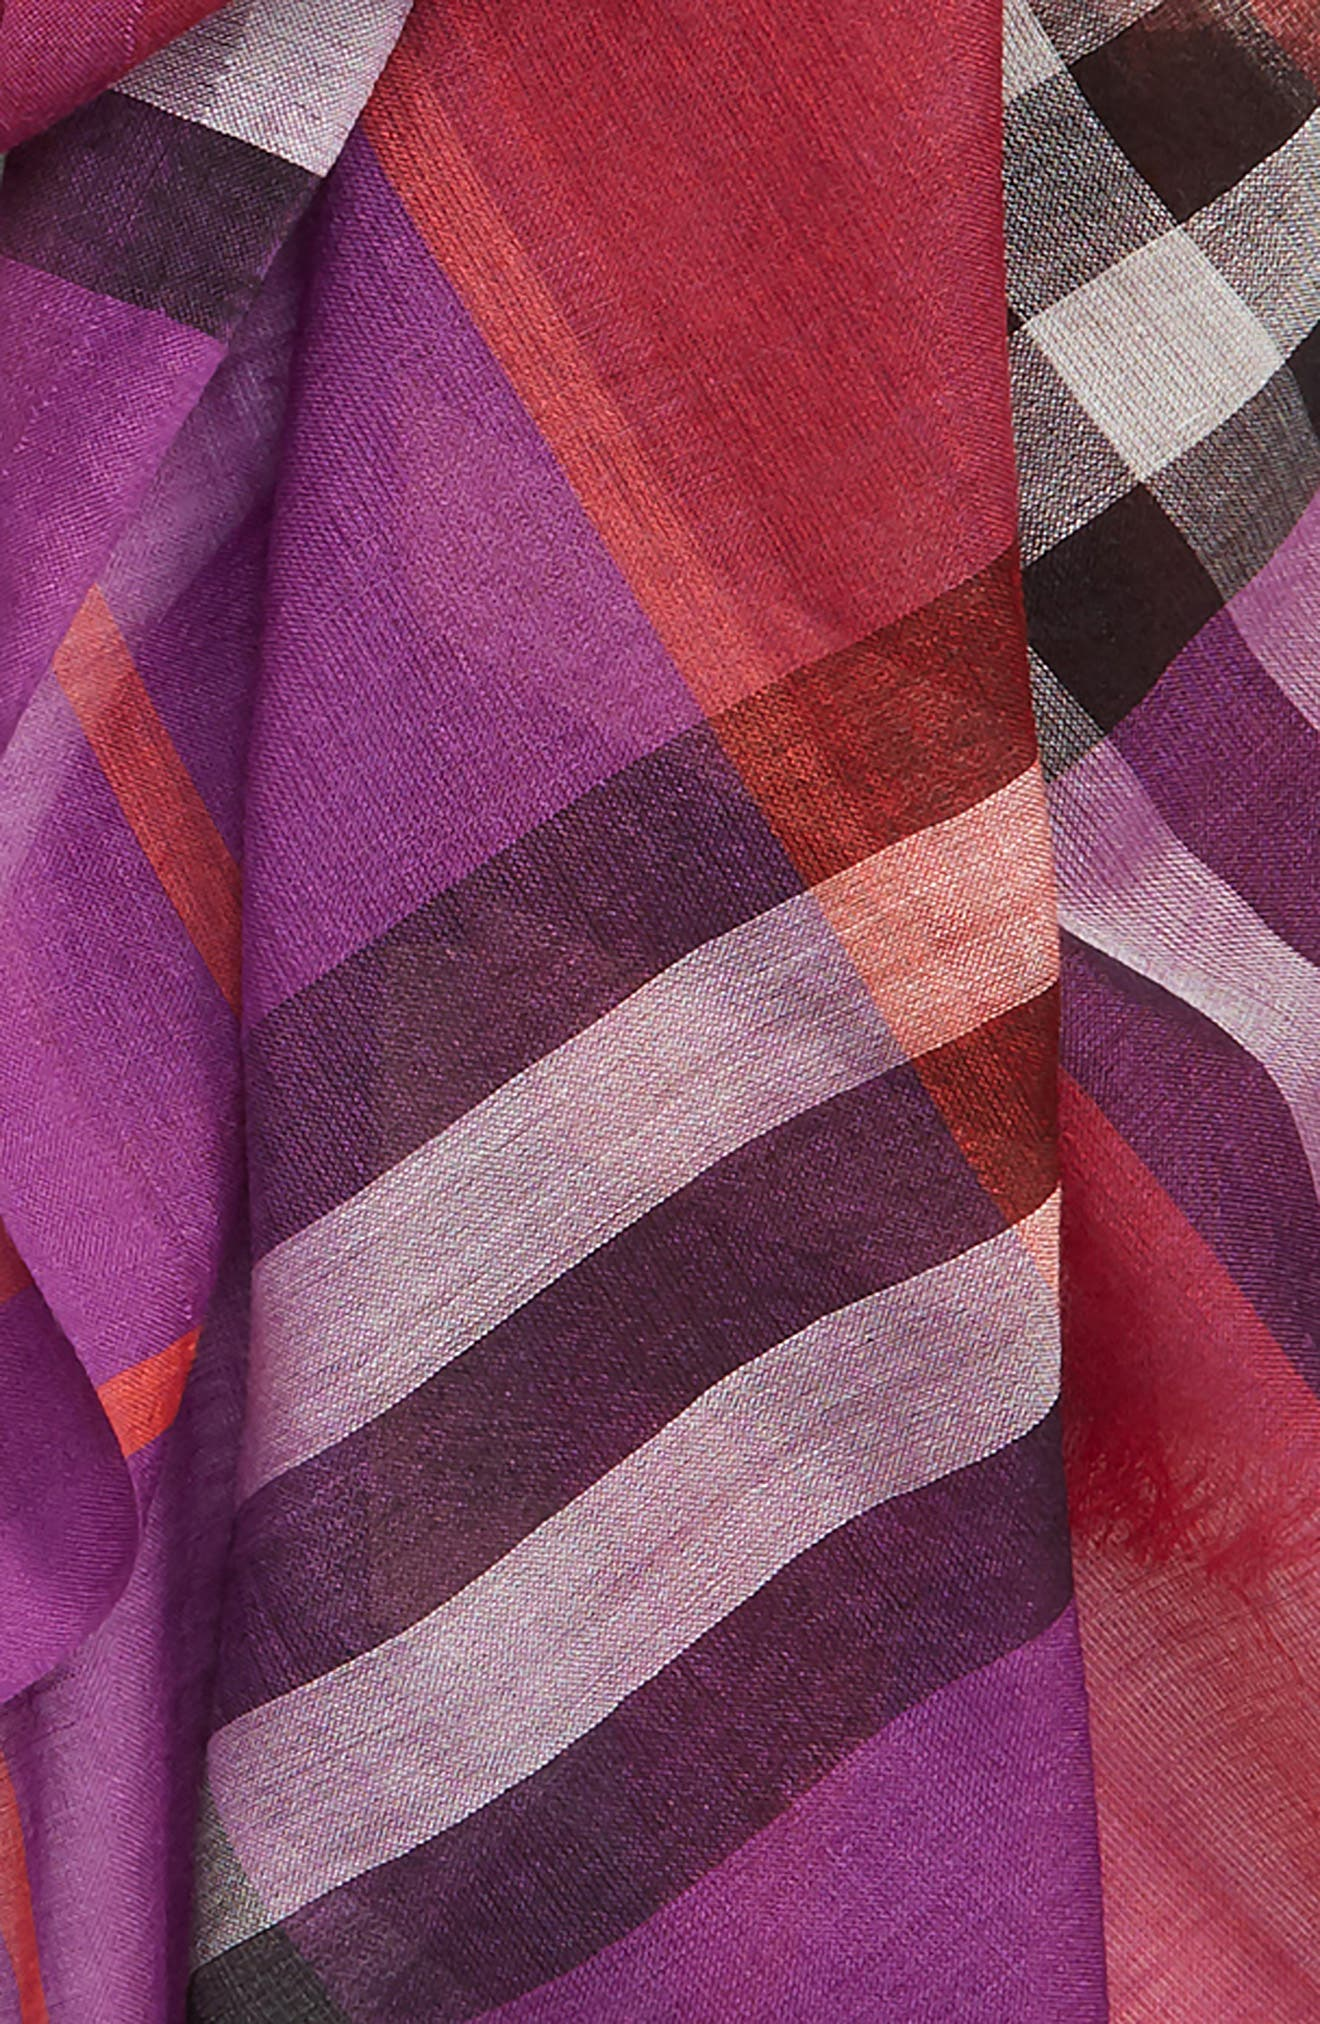 BURBERRY,                             Rainbow Giant Check Wool & Silk Scarf,                             Alternate thumbnail 4, color,                             BRIGHT PLUM